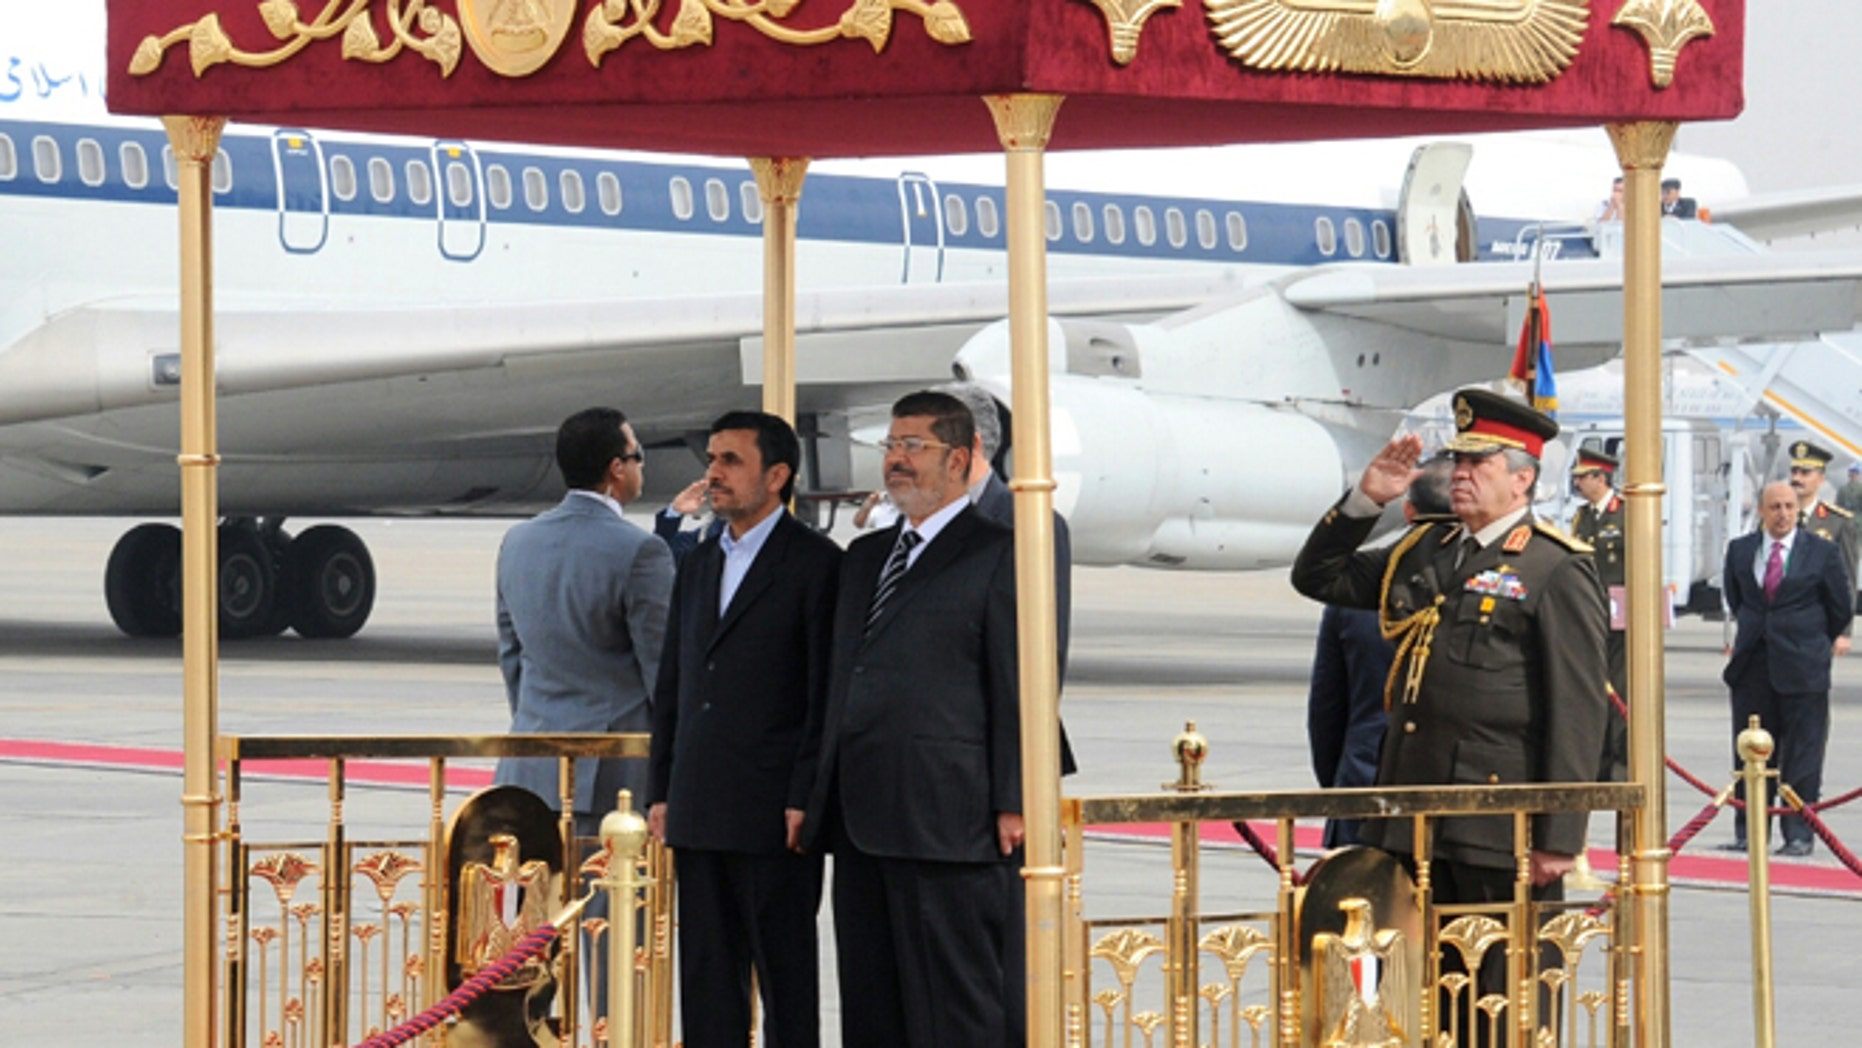 Feb. 5, 2013: In this image released by the Egyptian Presidency, Iran's President Mahmoud Ahmadinejad, center, and Egyptian President Mohammed Morsi, center right, participate in an arrival ceremony at the airport in Cairo, Egypt.